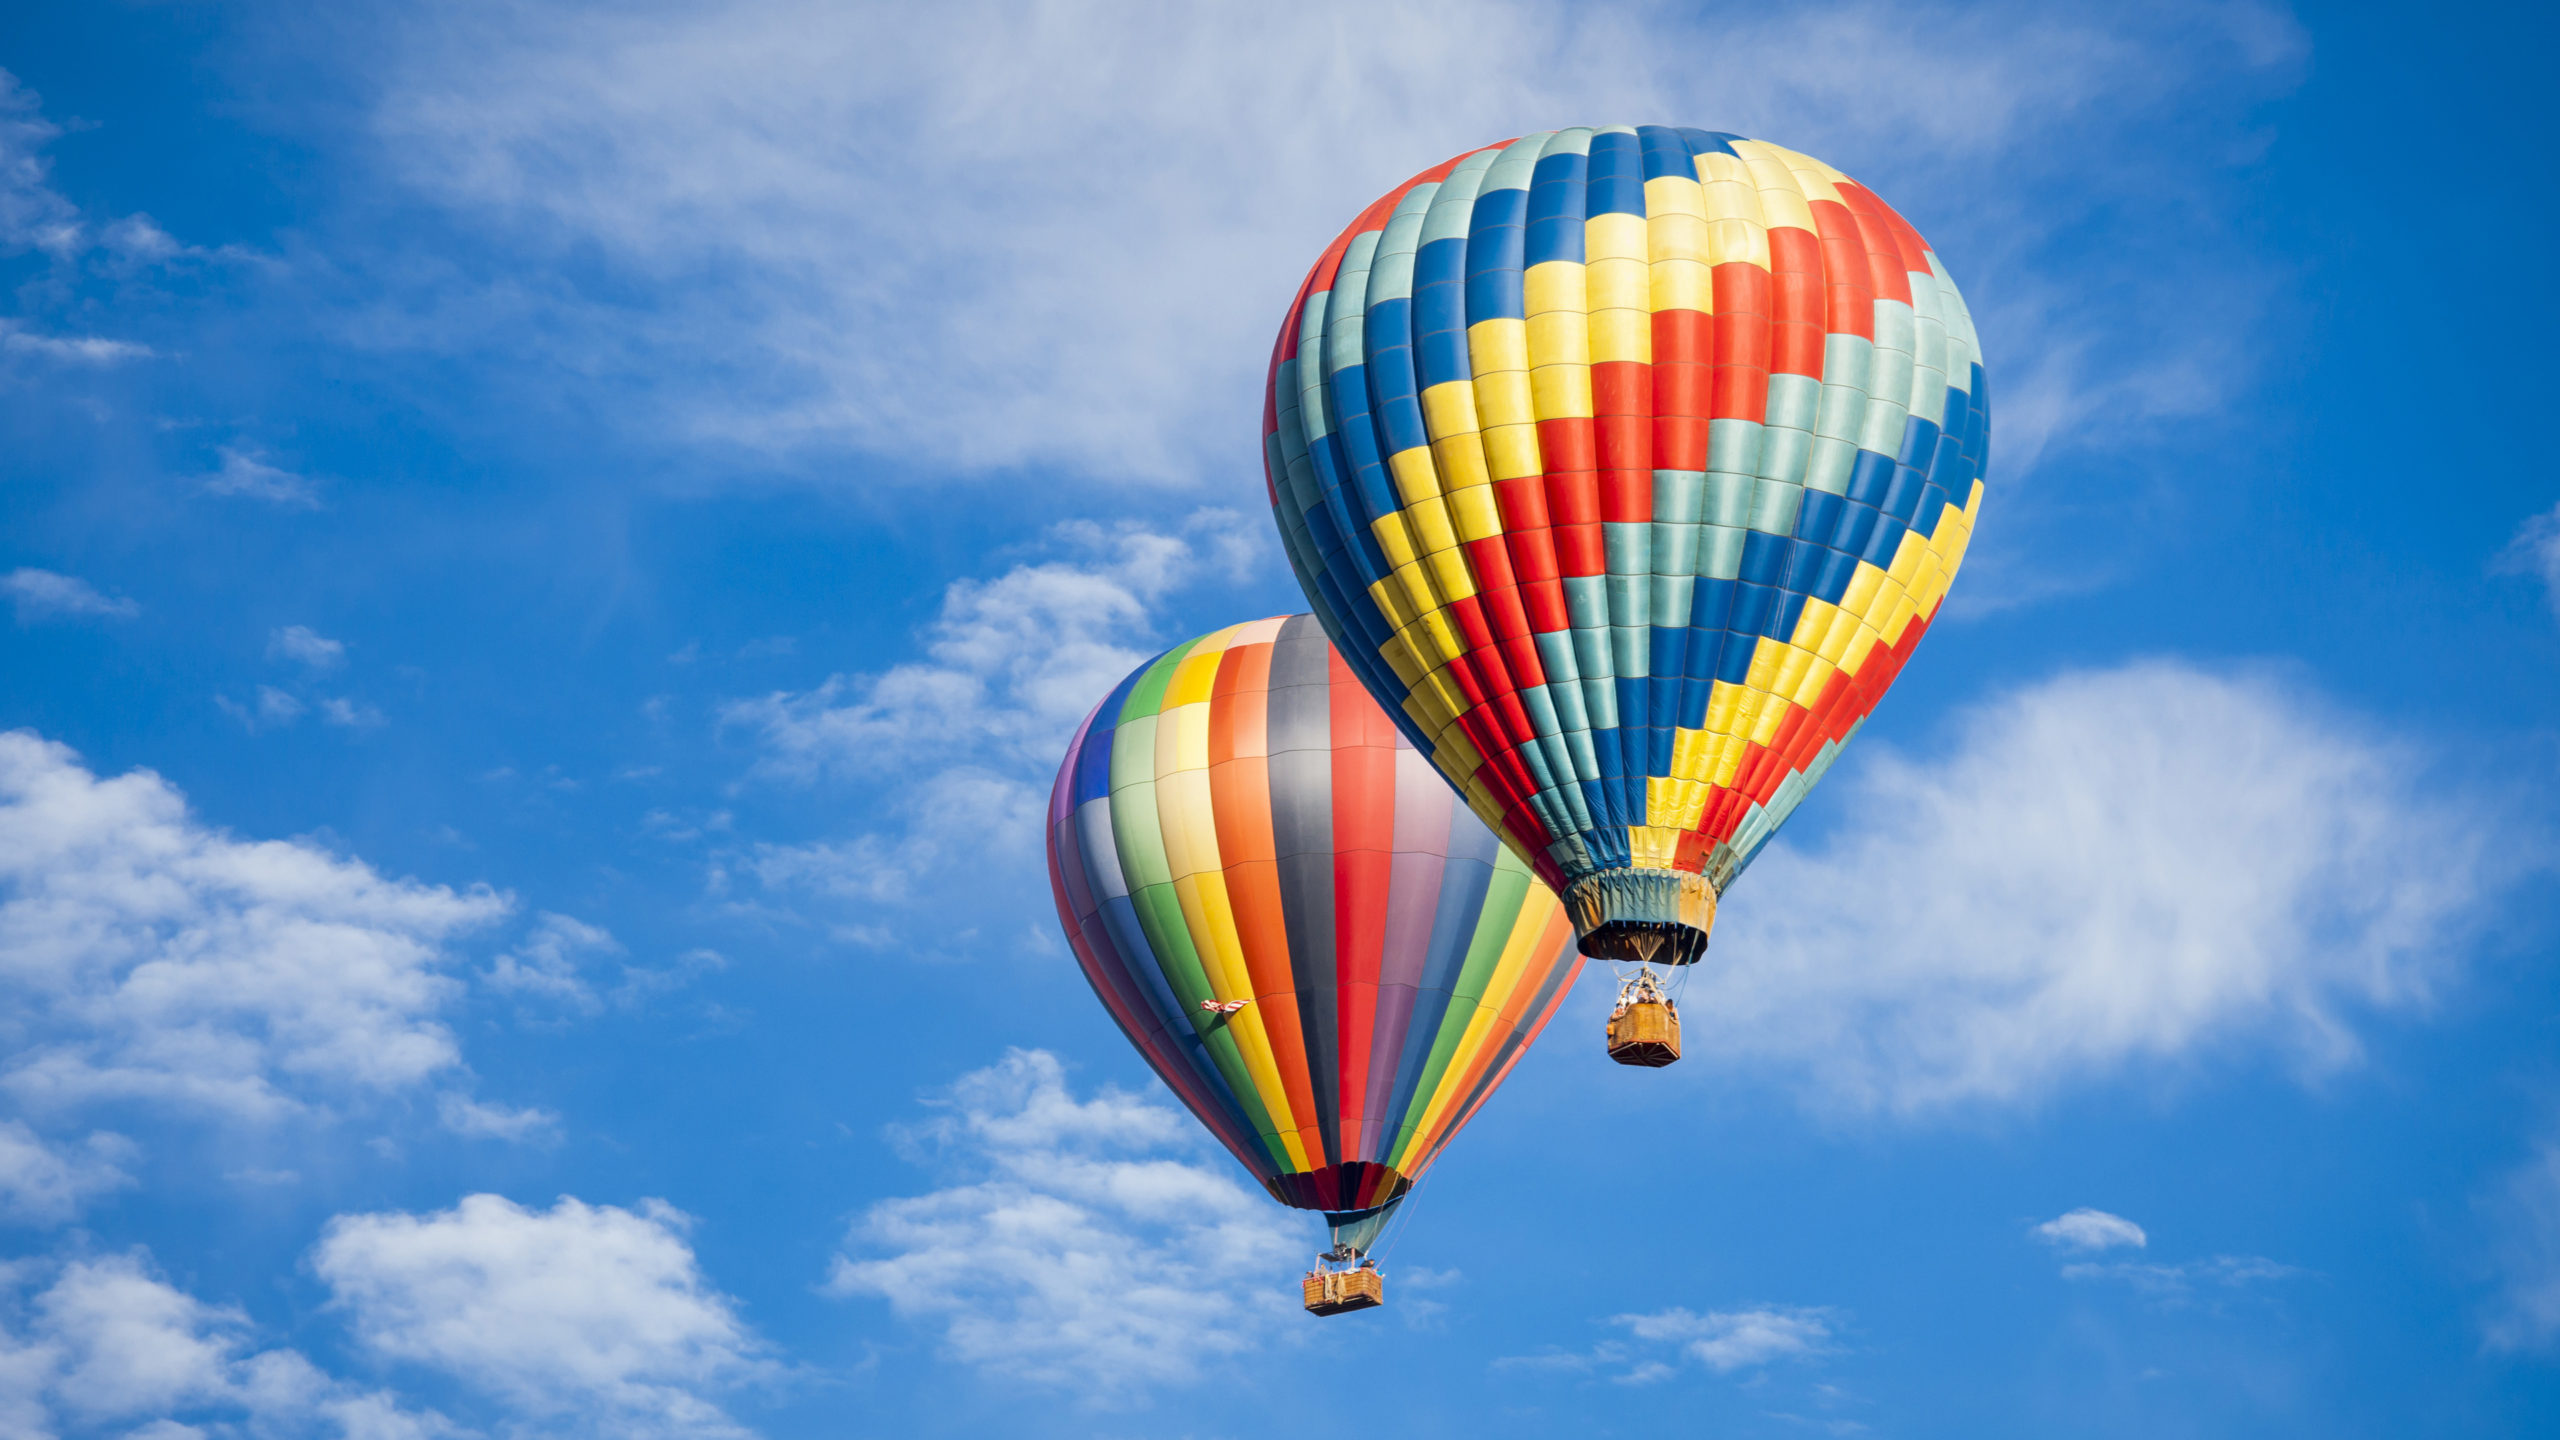 Two colorful hot air balloons floating in blue sky with whispy clouds